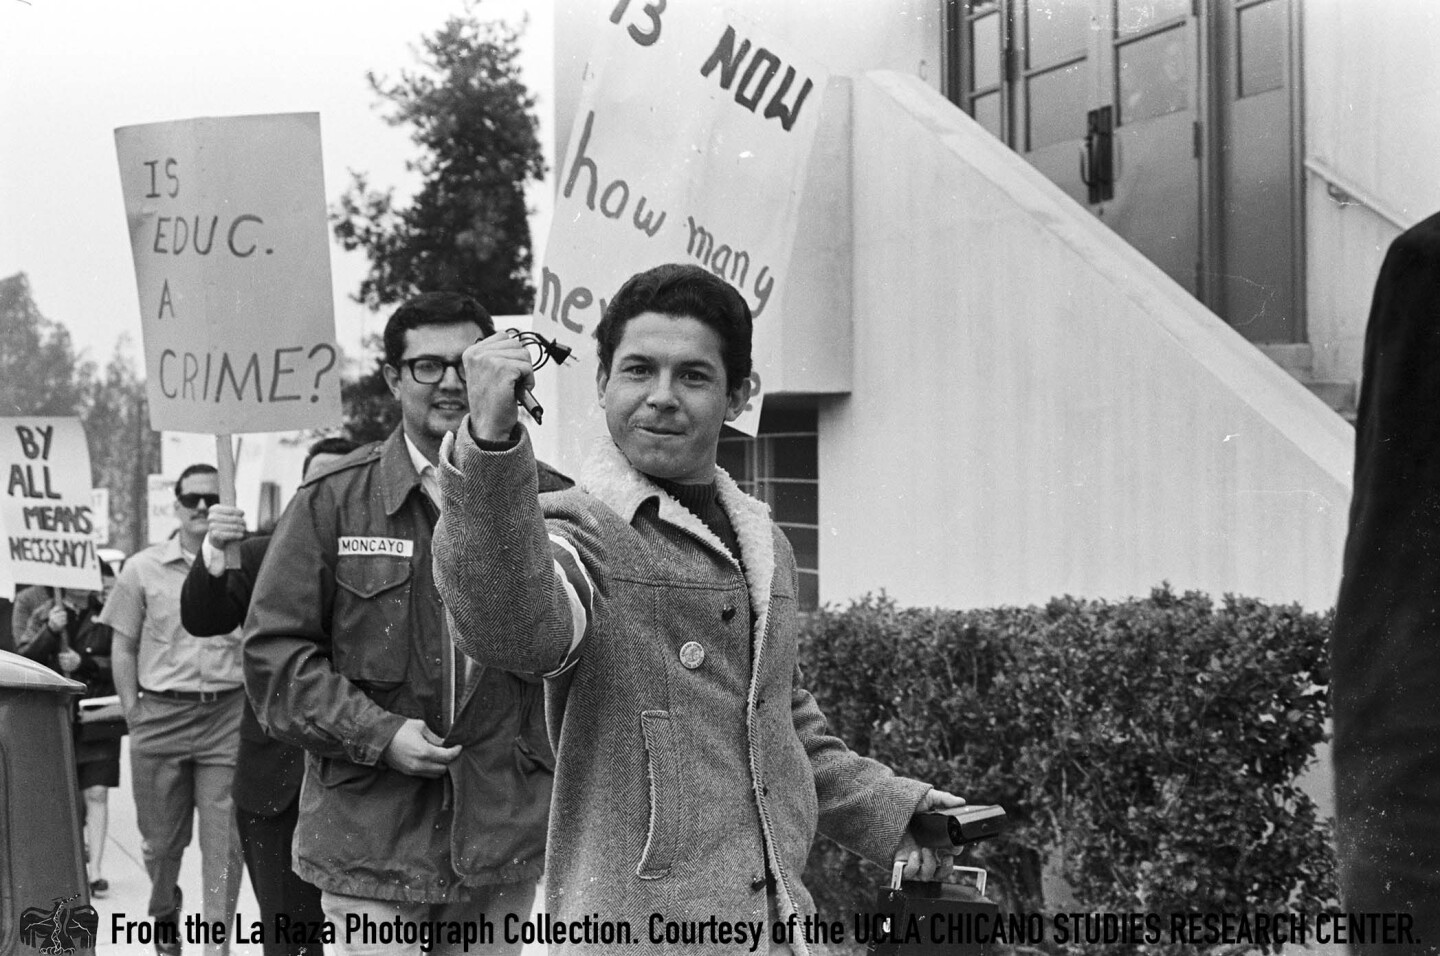 """CSRC_LaRaza_B1F3C5_Staff_018 """"Shorty"""" from Jardin 13 in Pico Rivera attends the Roosevelt High School walkout  